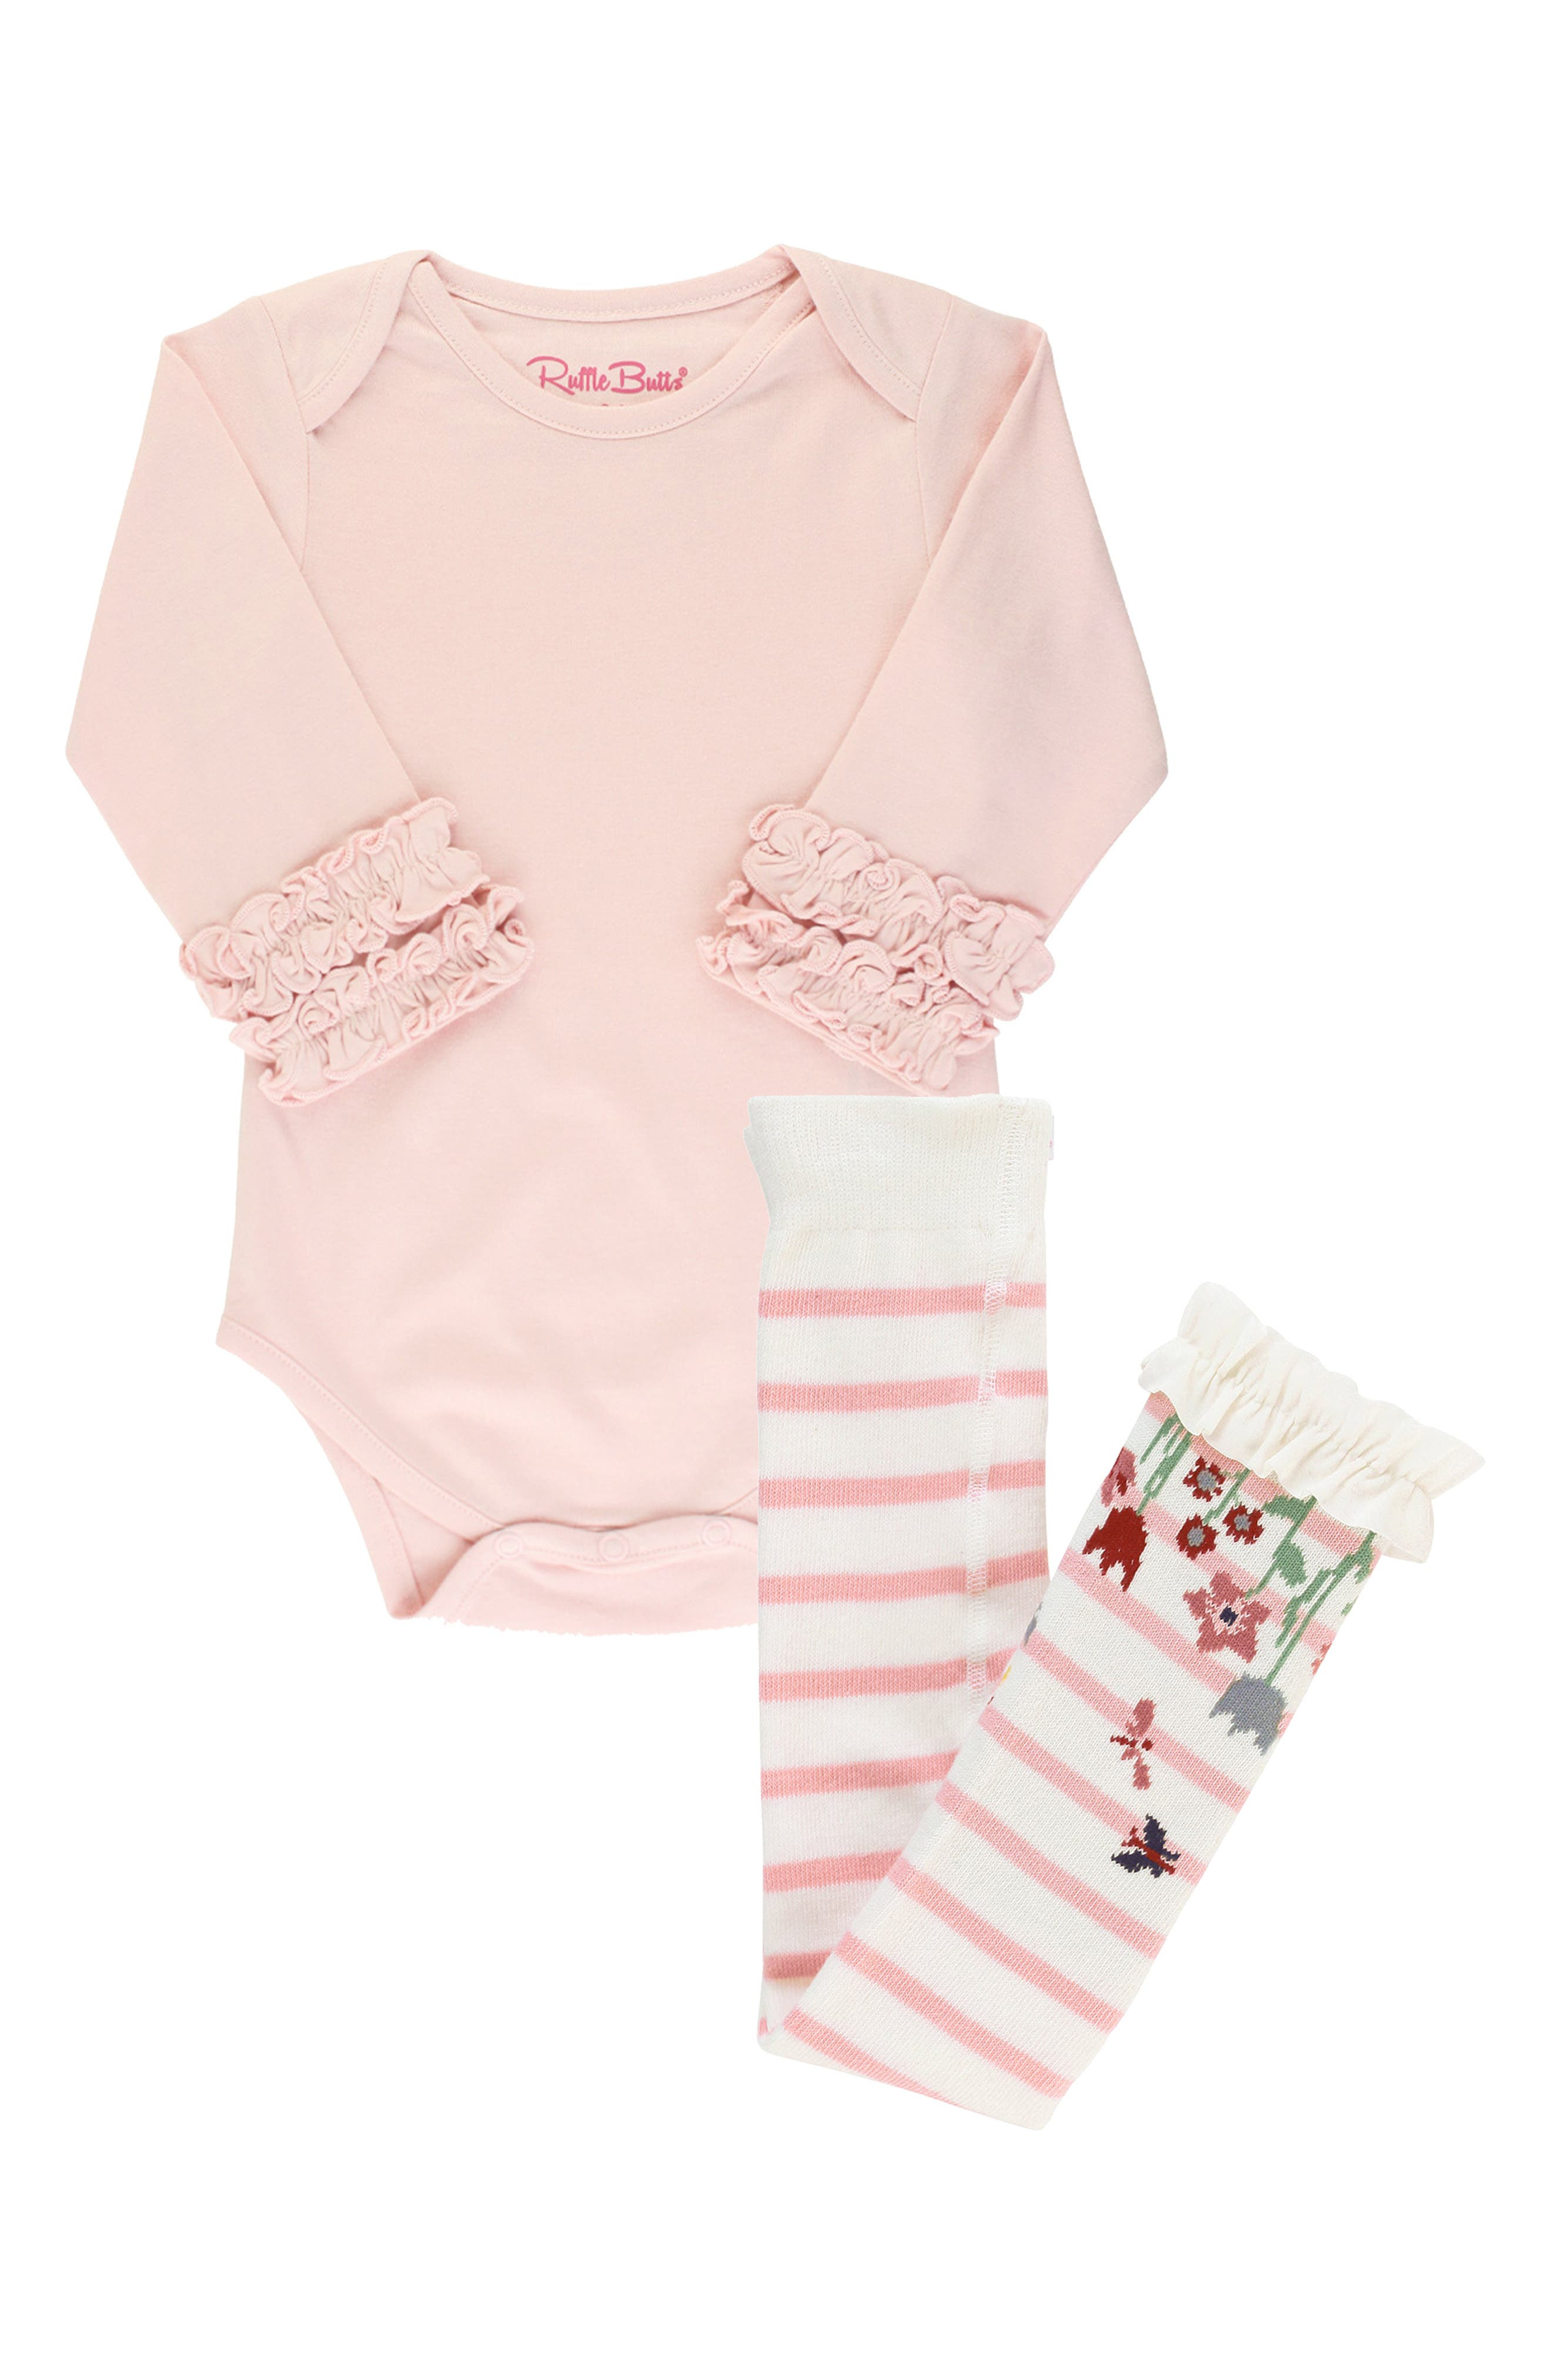 Abundant ruffles add endearing style to a long-sleeve jersey bodysuit that pairs with striped tights for a perfect playtime style. Style Name: Rufflebutts Ballet Pink Bodysuit & Stripe Tights Set (Baby). Style Number: 6115692. Available in stores.